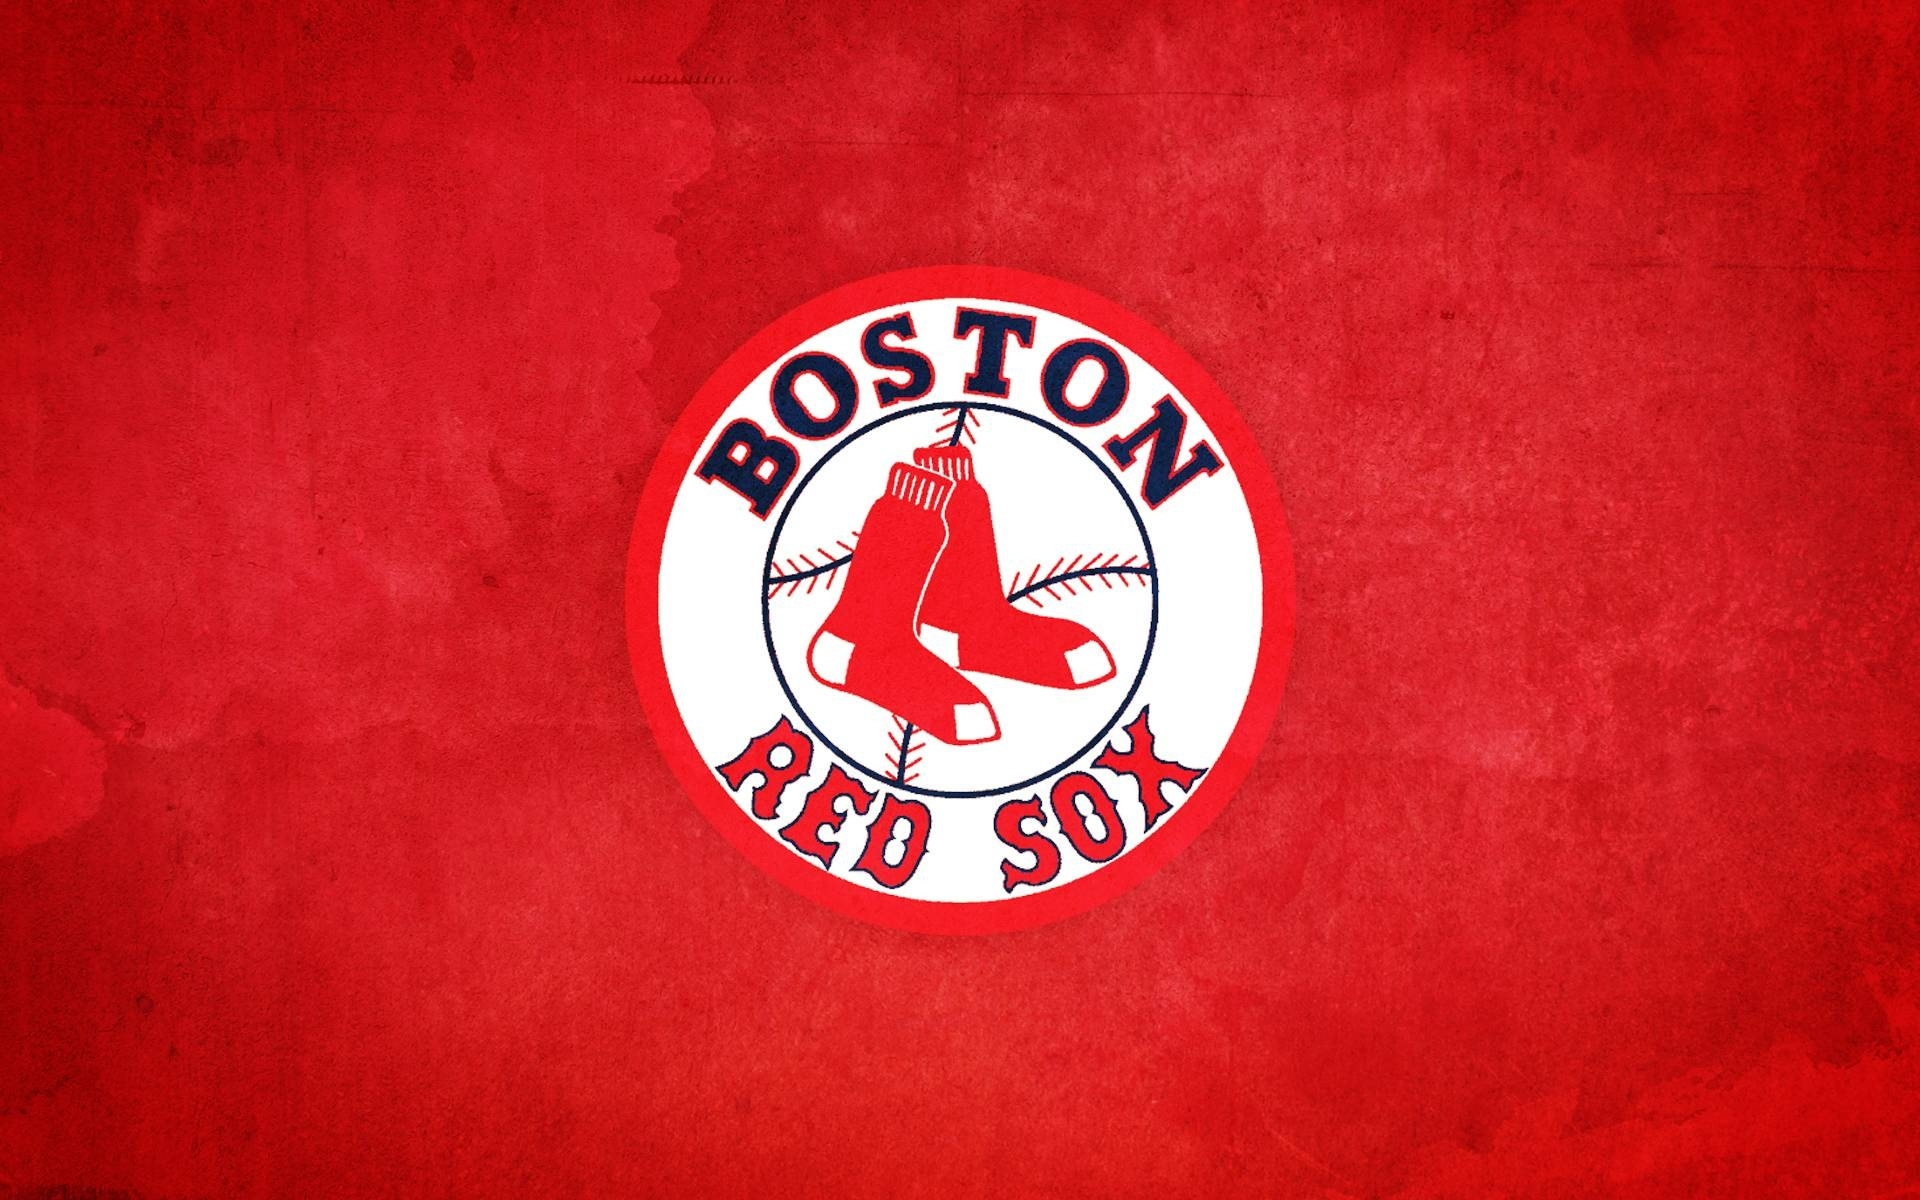 10 New Boston Red Sox Images Wallpaper FULL HD 1920×1080 For PC Background